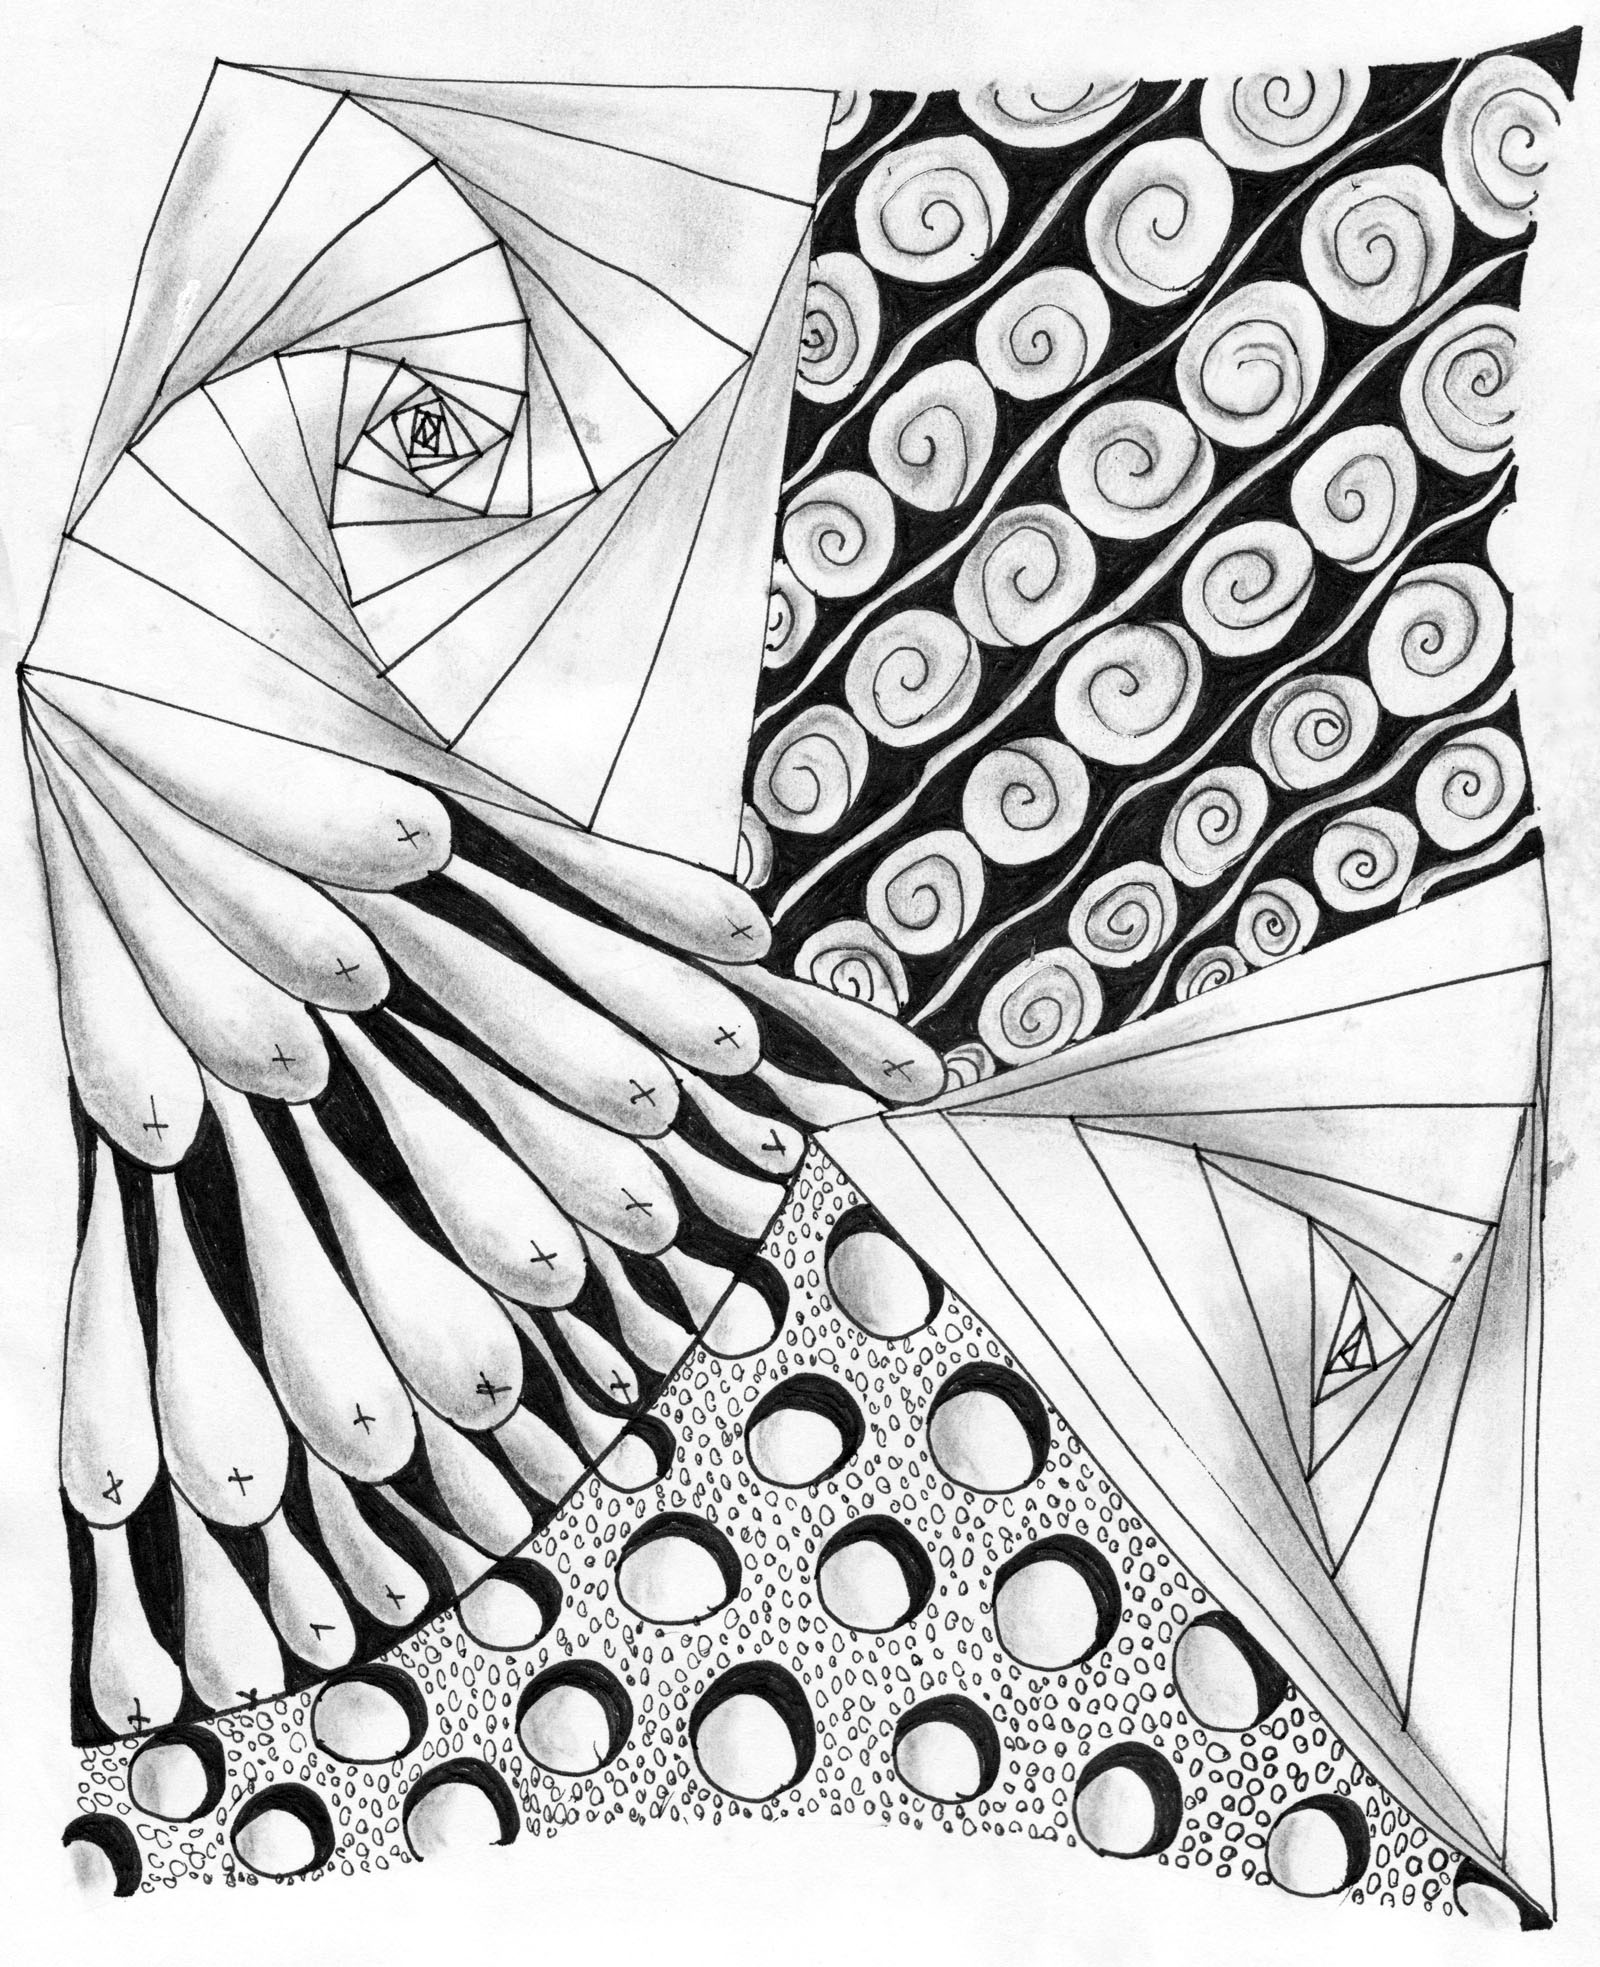 SMAsta_Zentangle_09_Shaded.jpg